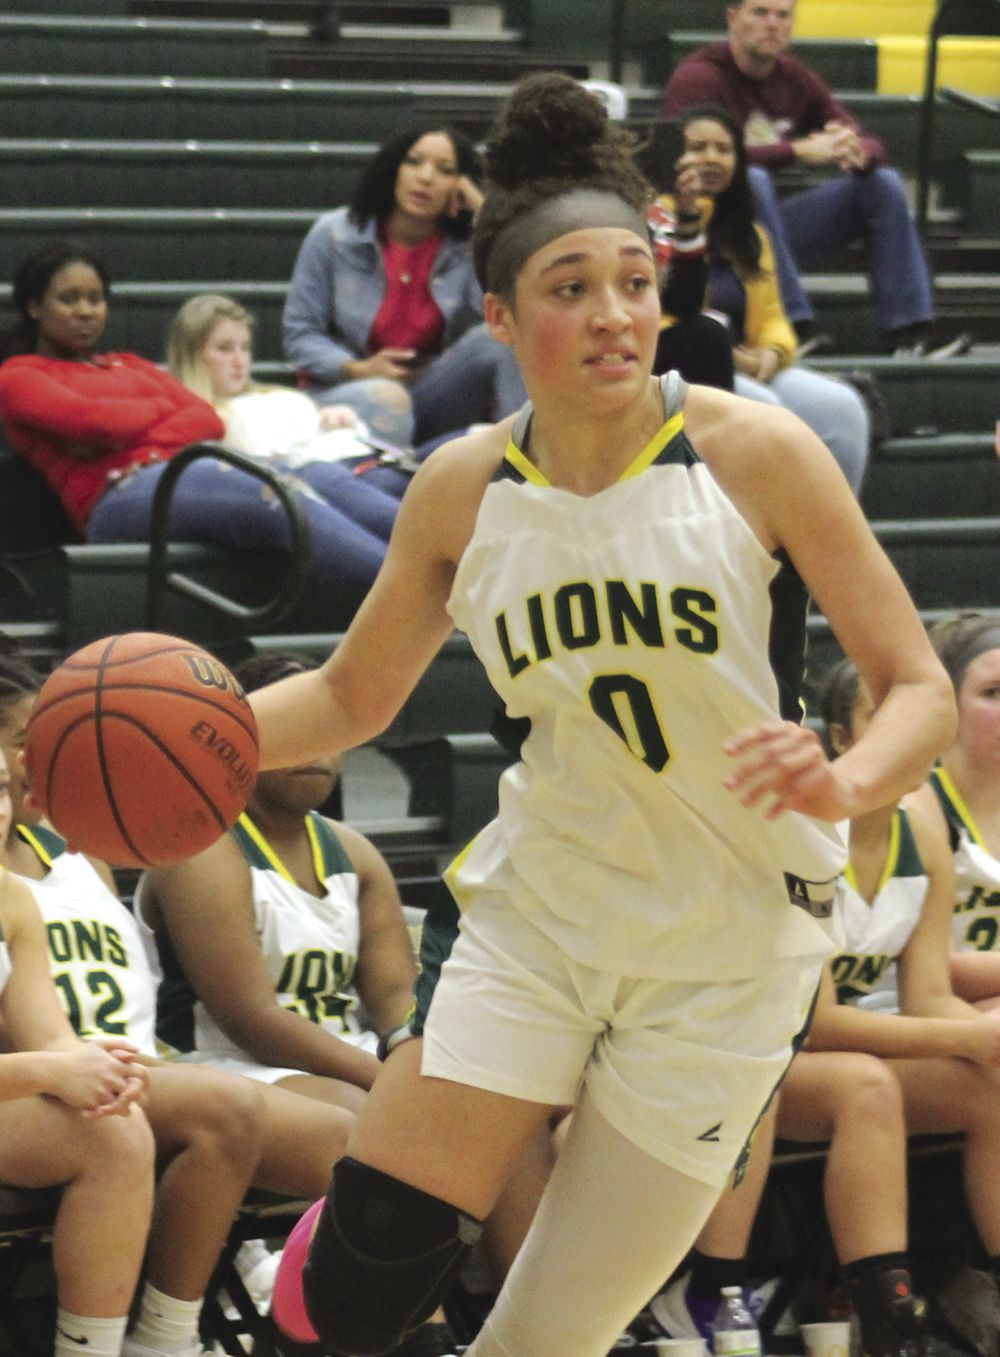 Lions named to all-region basketball teams